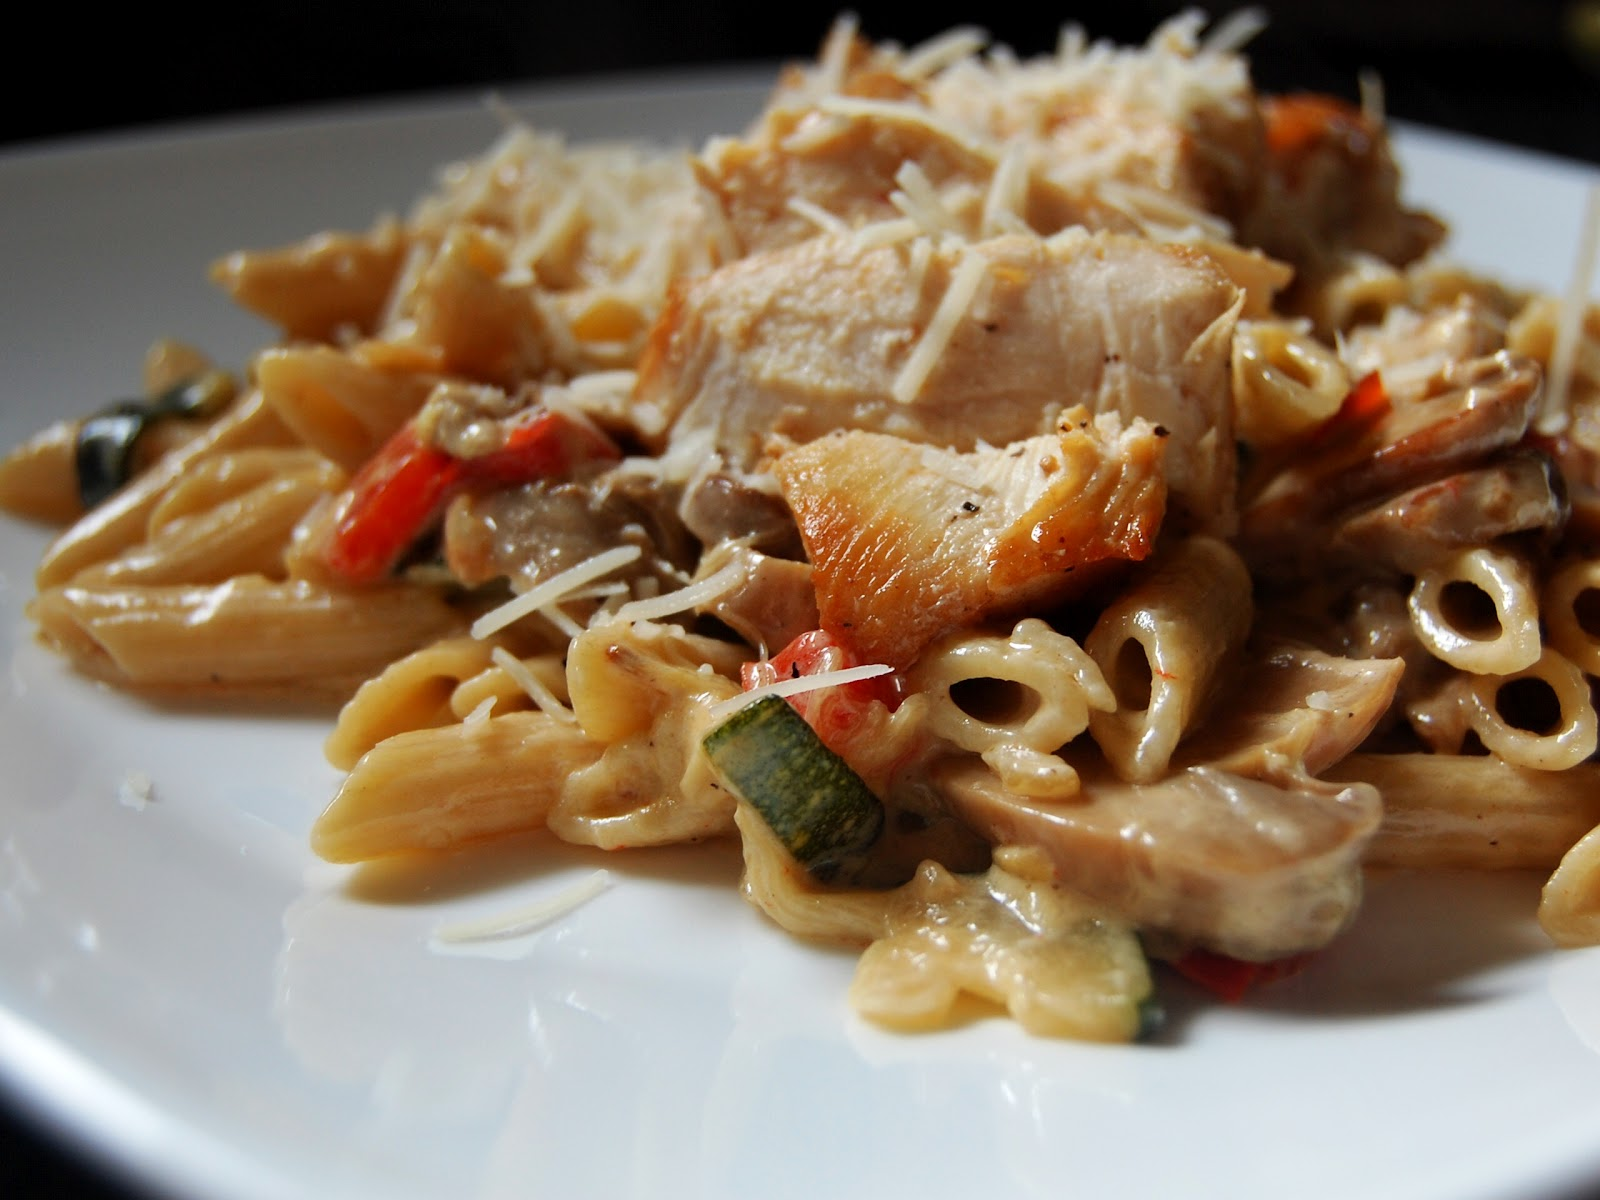 linguine with chicken and vegetables in a cream sauce